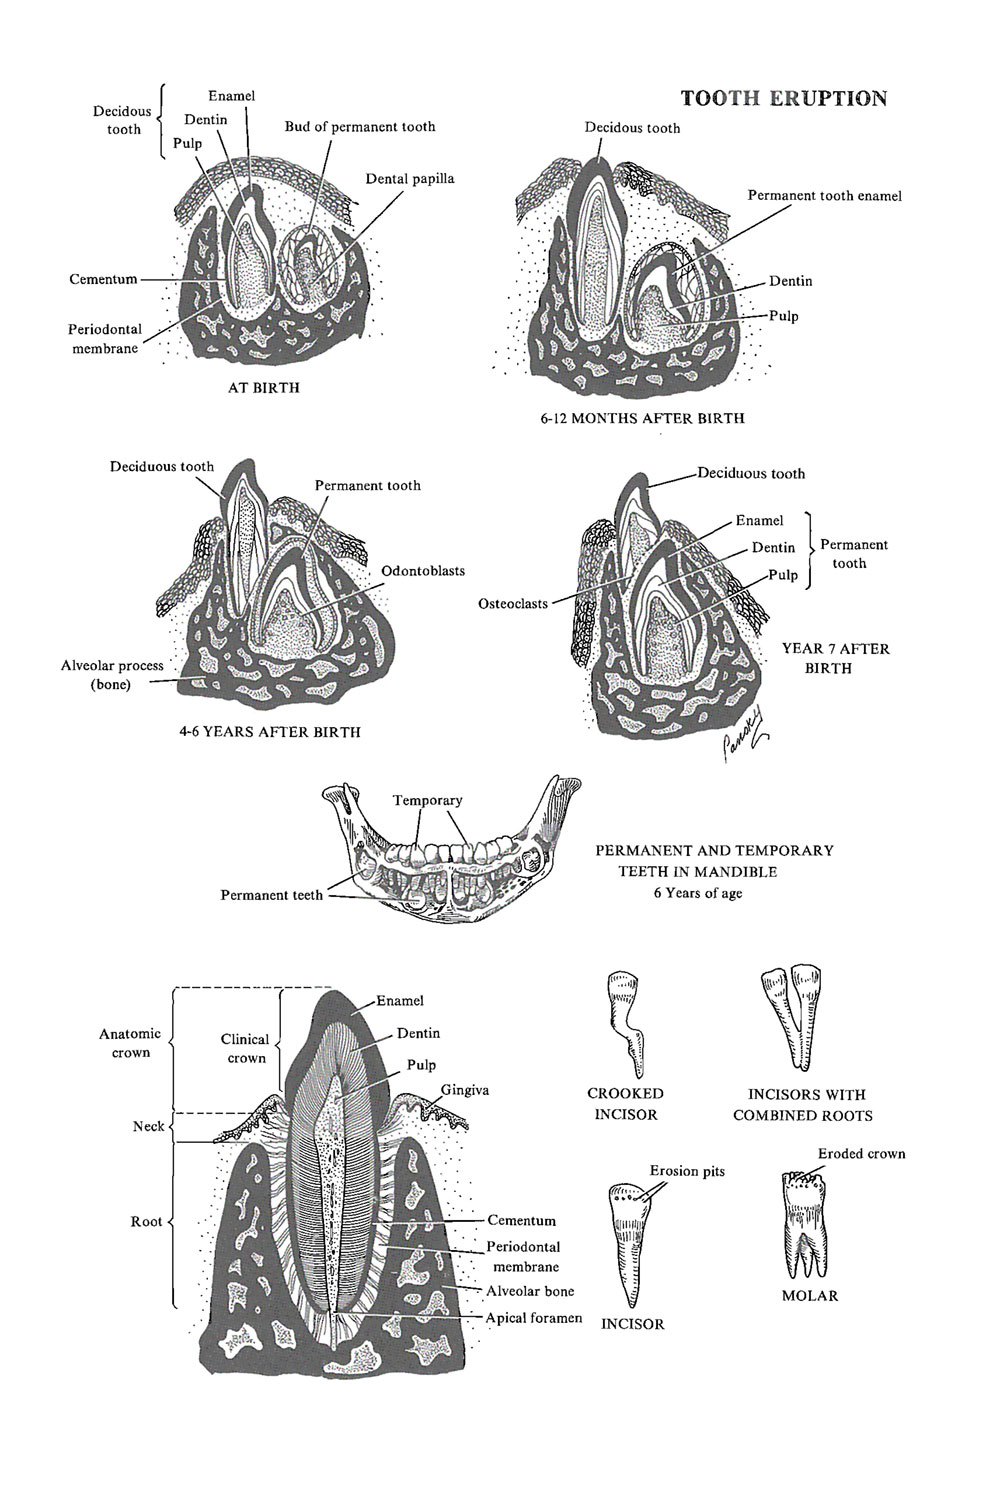 tooth eruption and malformations of the teeth: image #1